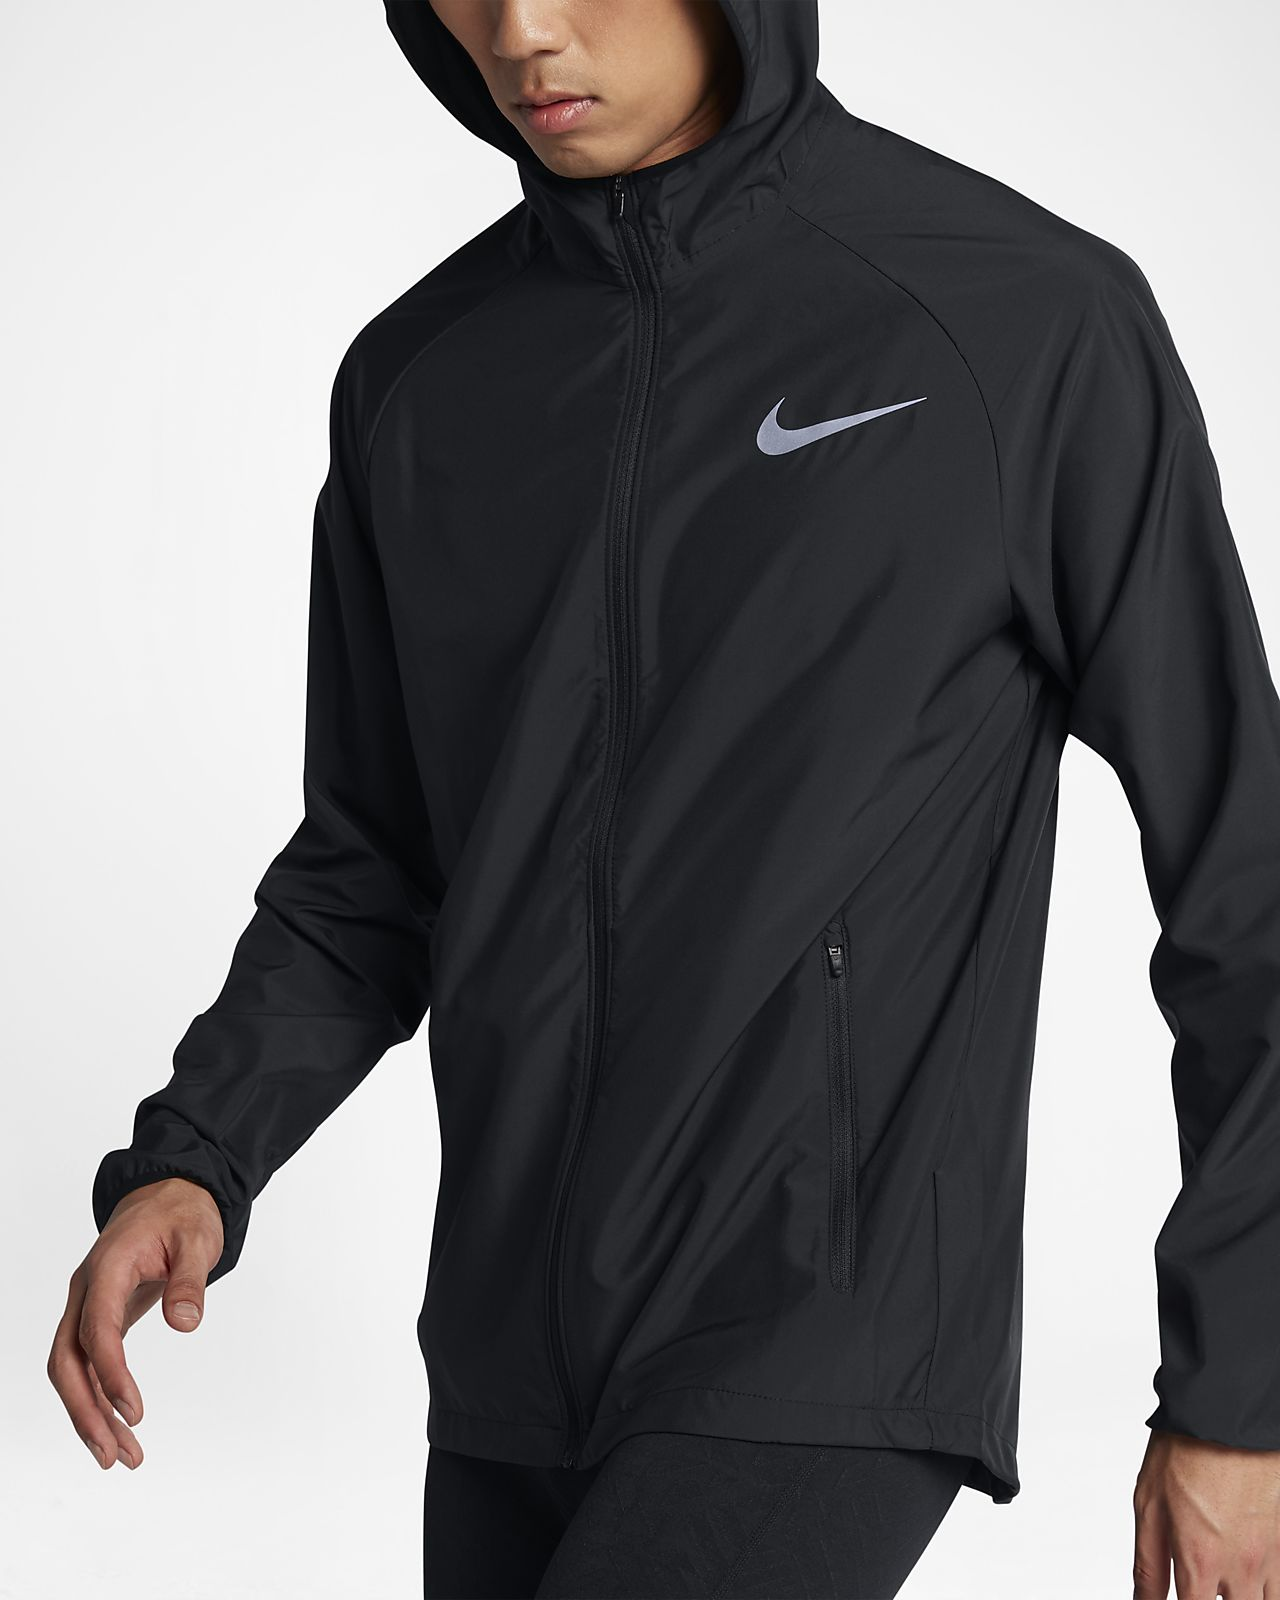 be1d53b3fa Low Resolution Nike Essential Men s Running Jacket Nike Essential Men s  Running Jacket